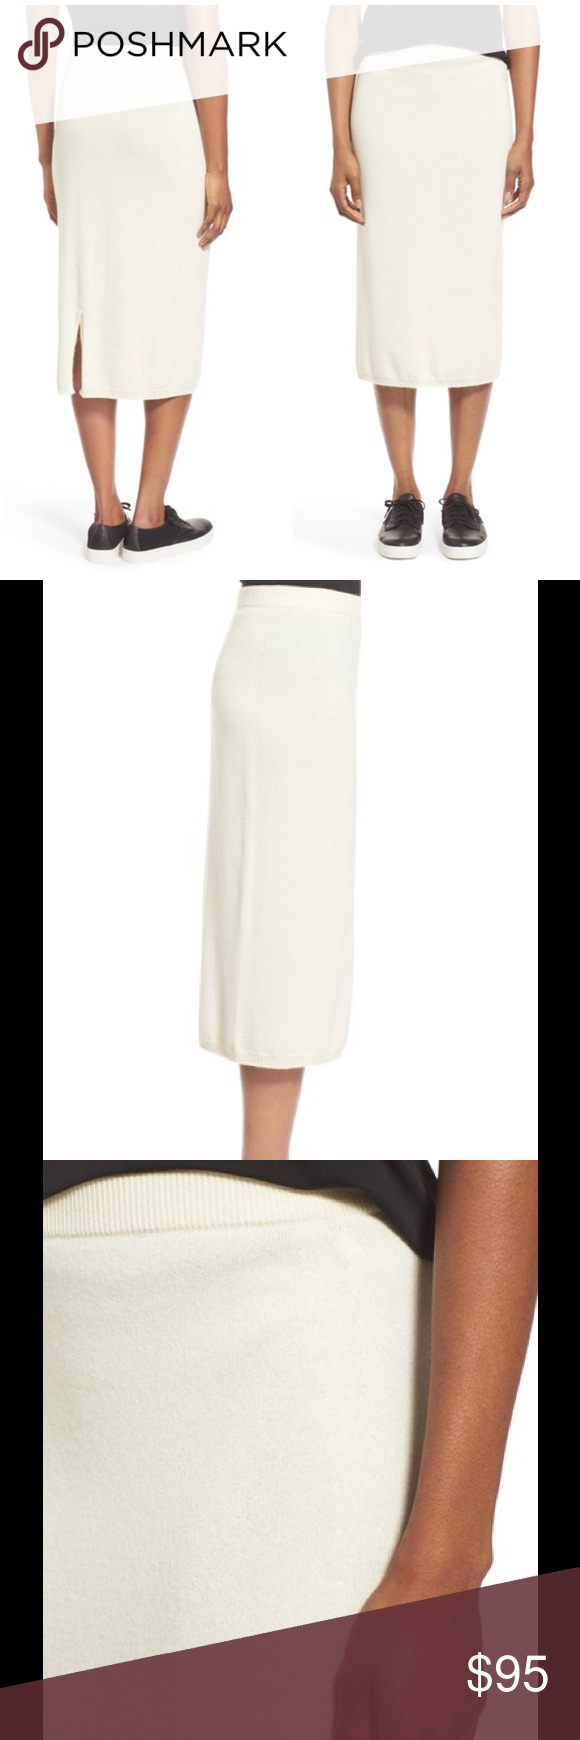 """🆕 Eileen Fisher cashmere pencil skirt off white A lush knit of pure Italian cashmere gets a pull-on pencil skirt ready for cooler weather. A back vent eases the slim, straight fit. 30"""" length. Pull-on style; elastic waist. Semi-sheer. 100% cashmere. Brand new with tag. Retail price $328. Eileen Fisher Skirts Pencil"""